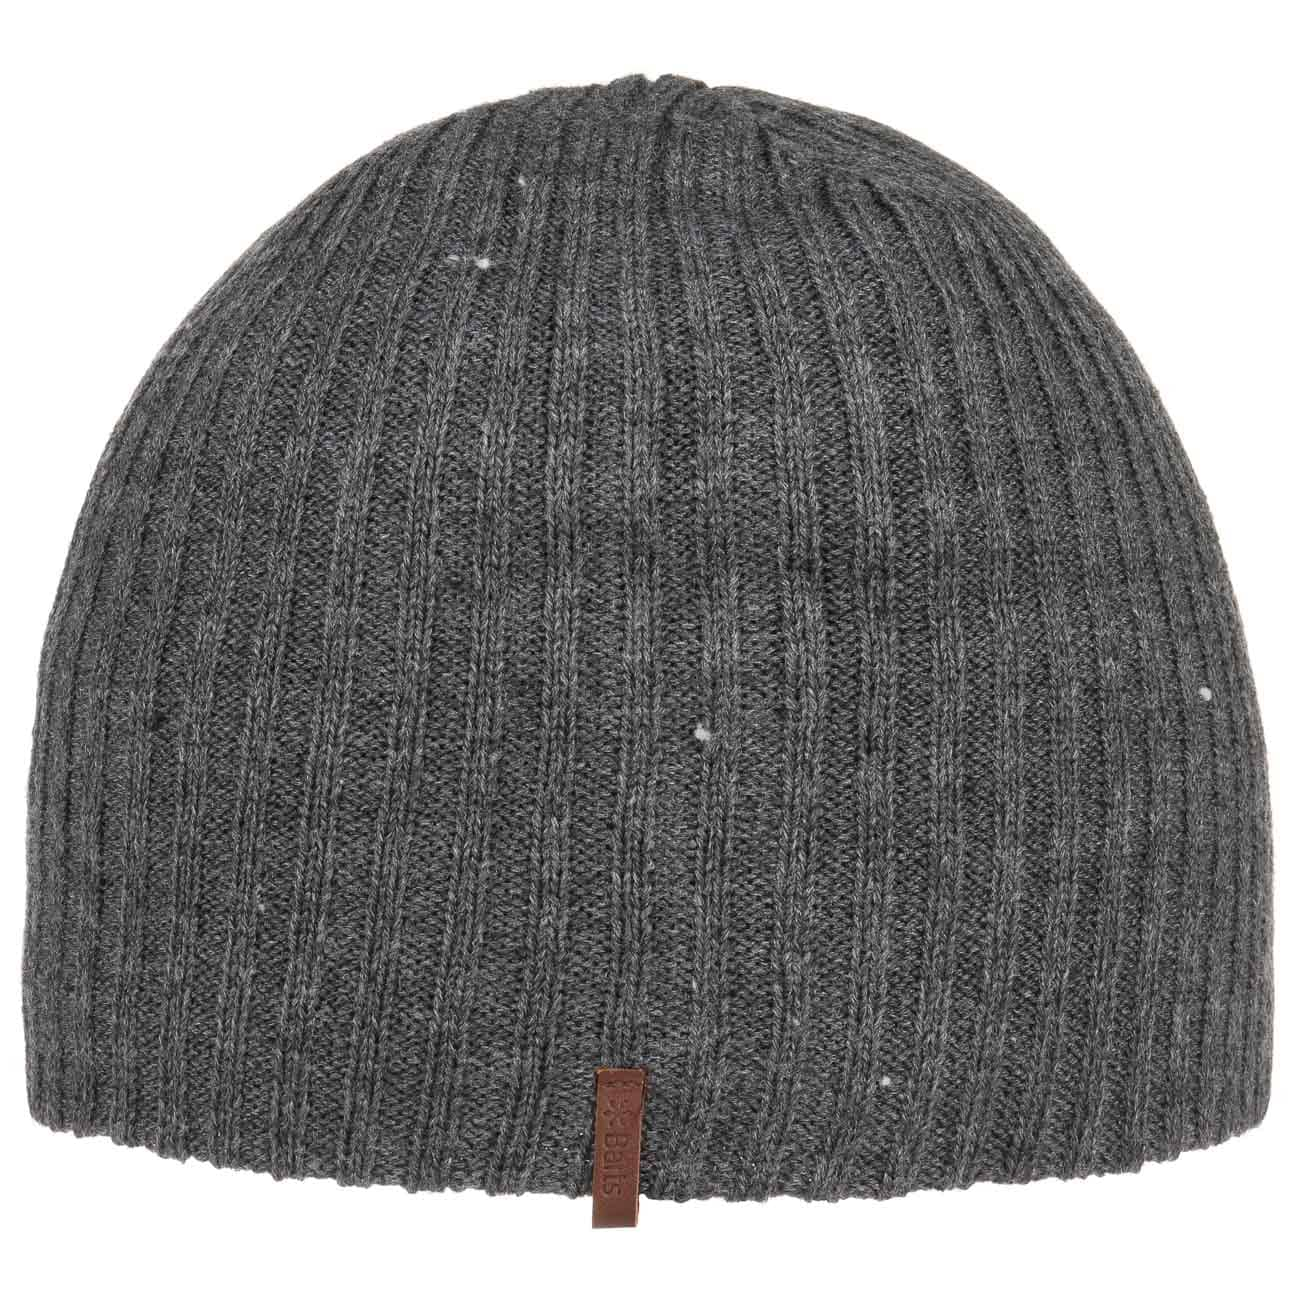 wilbert-beanie-by-barts-pull-on